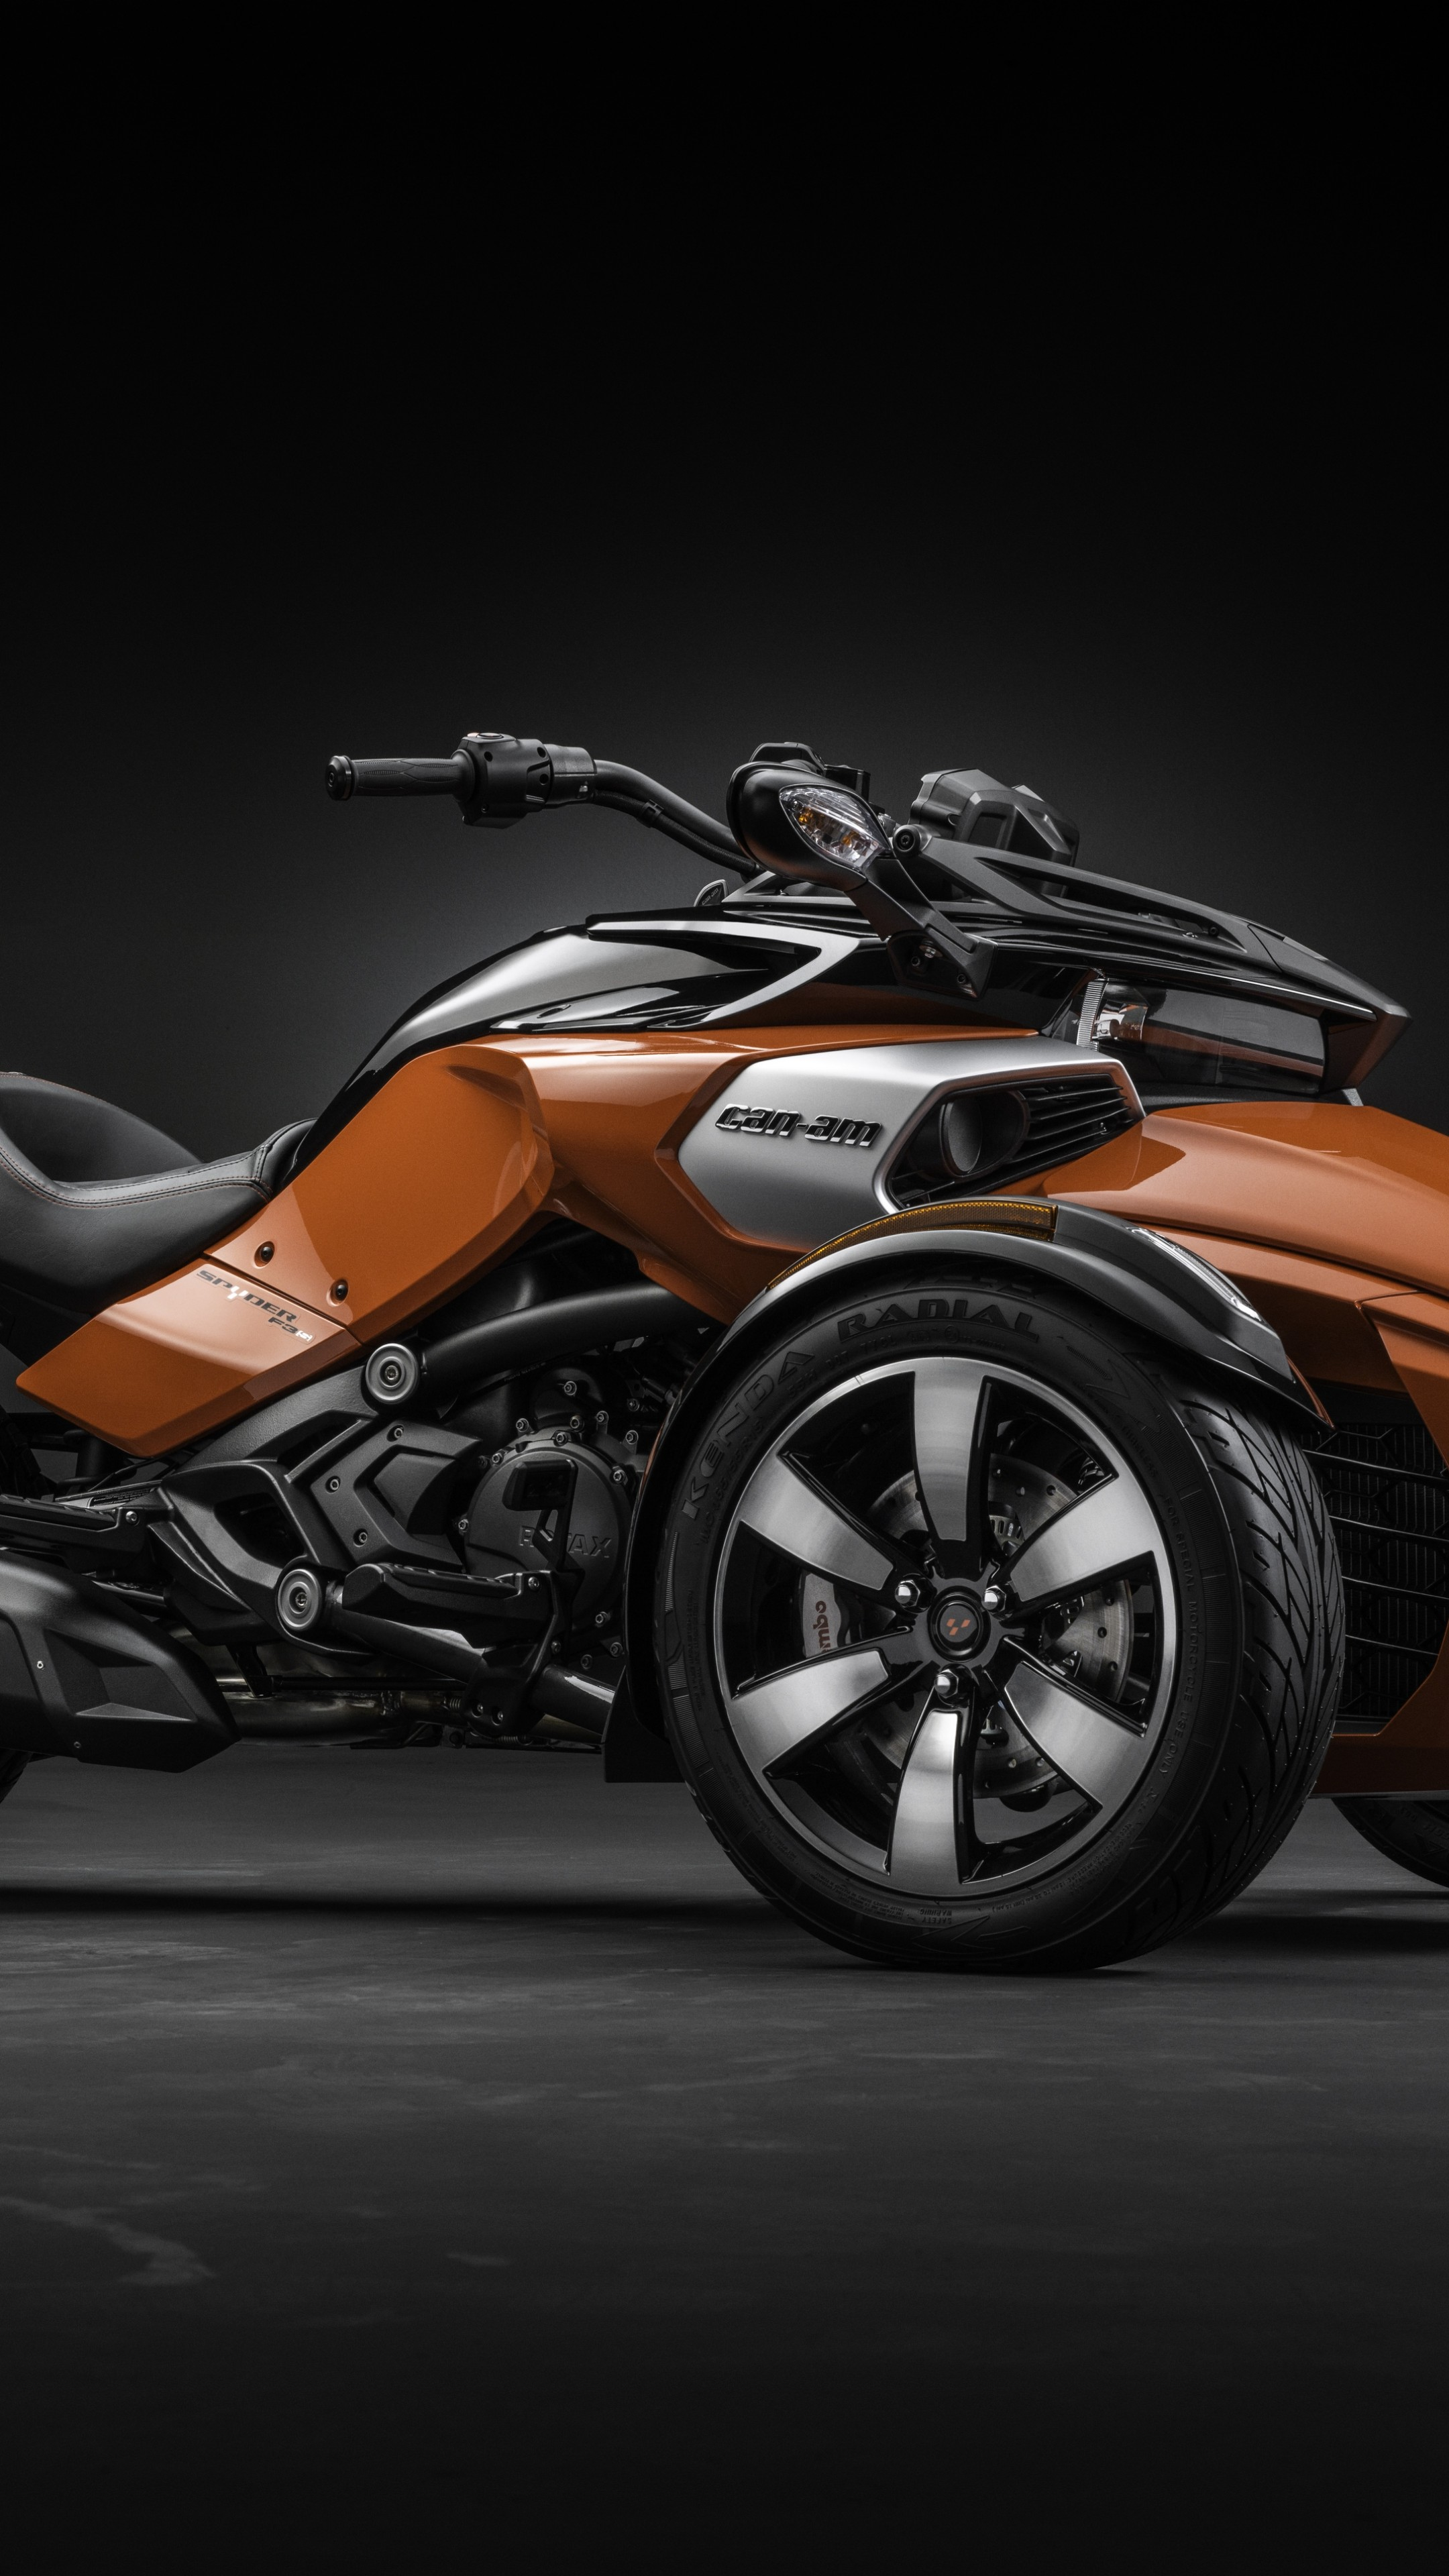 Wallpaper Brp Can Am Spyder F3 S Roadster Motorcycle